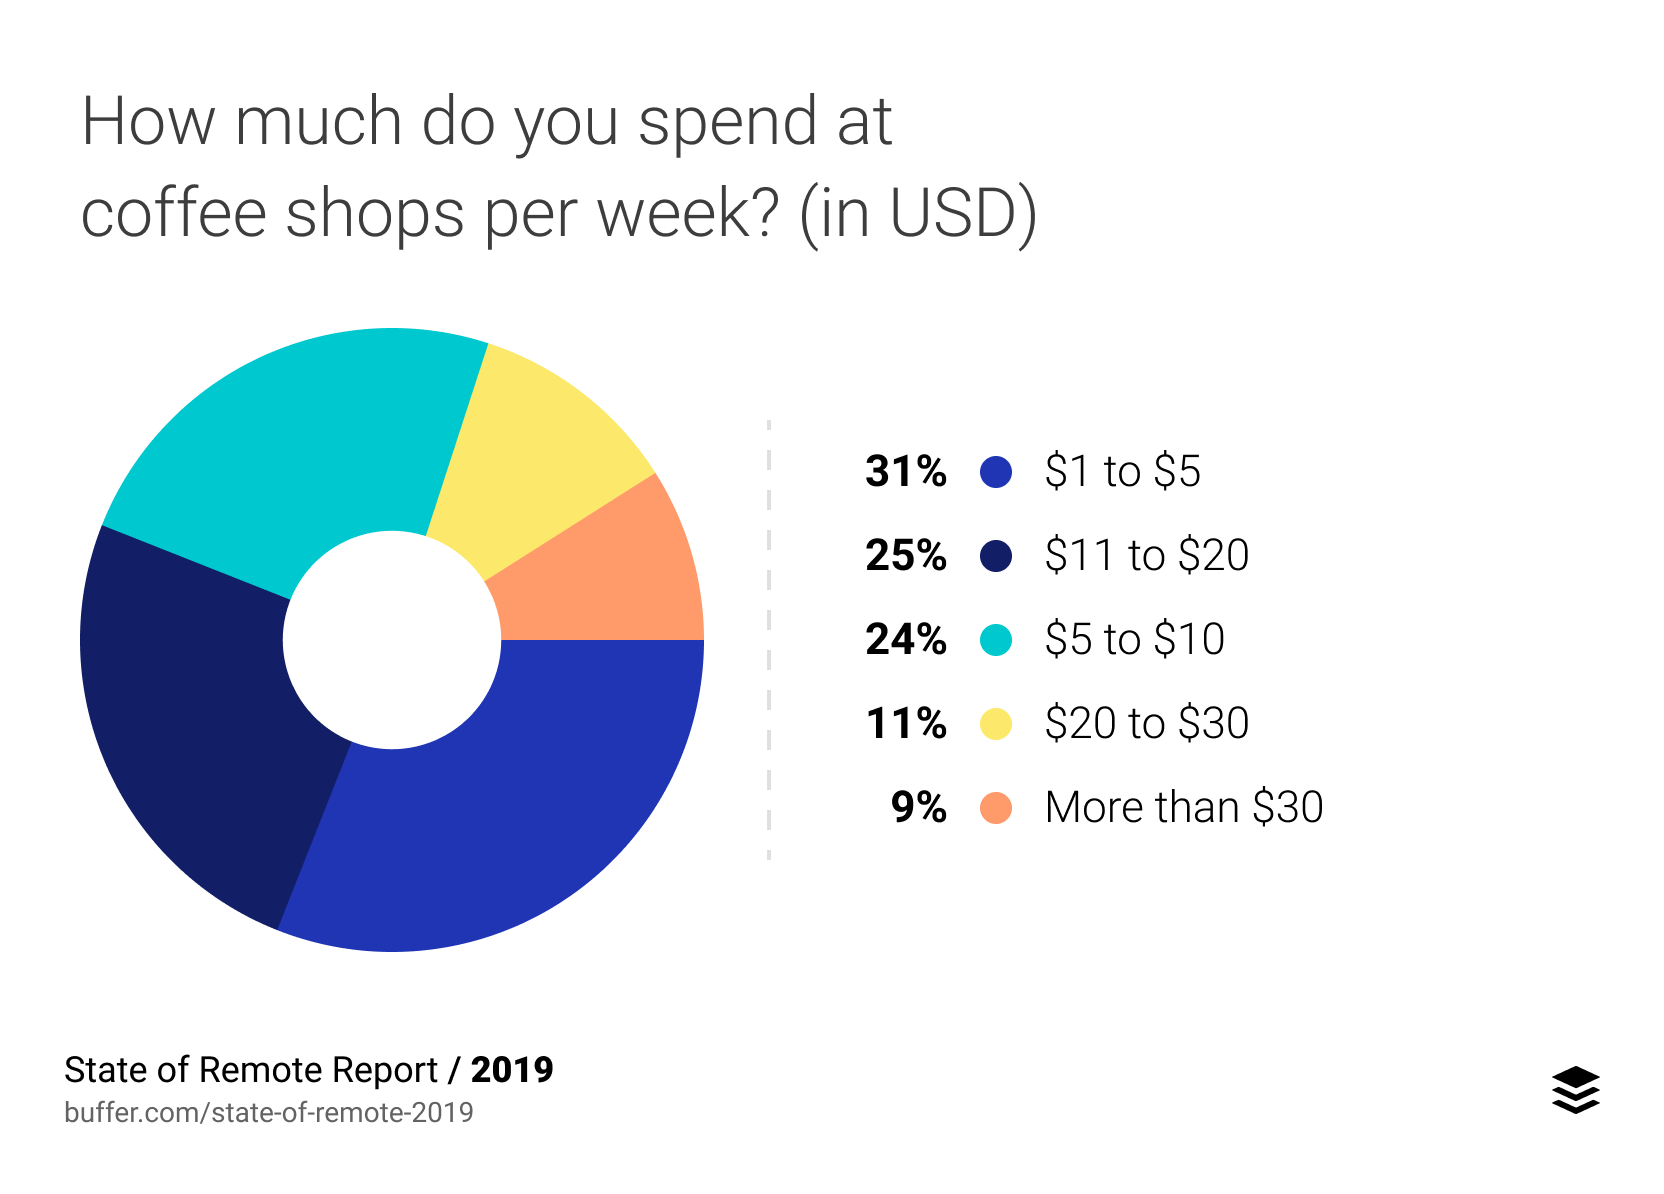 If you work from coffee shops, how much do you spend at coffee shops per week? (in USD)